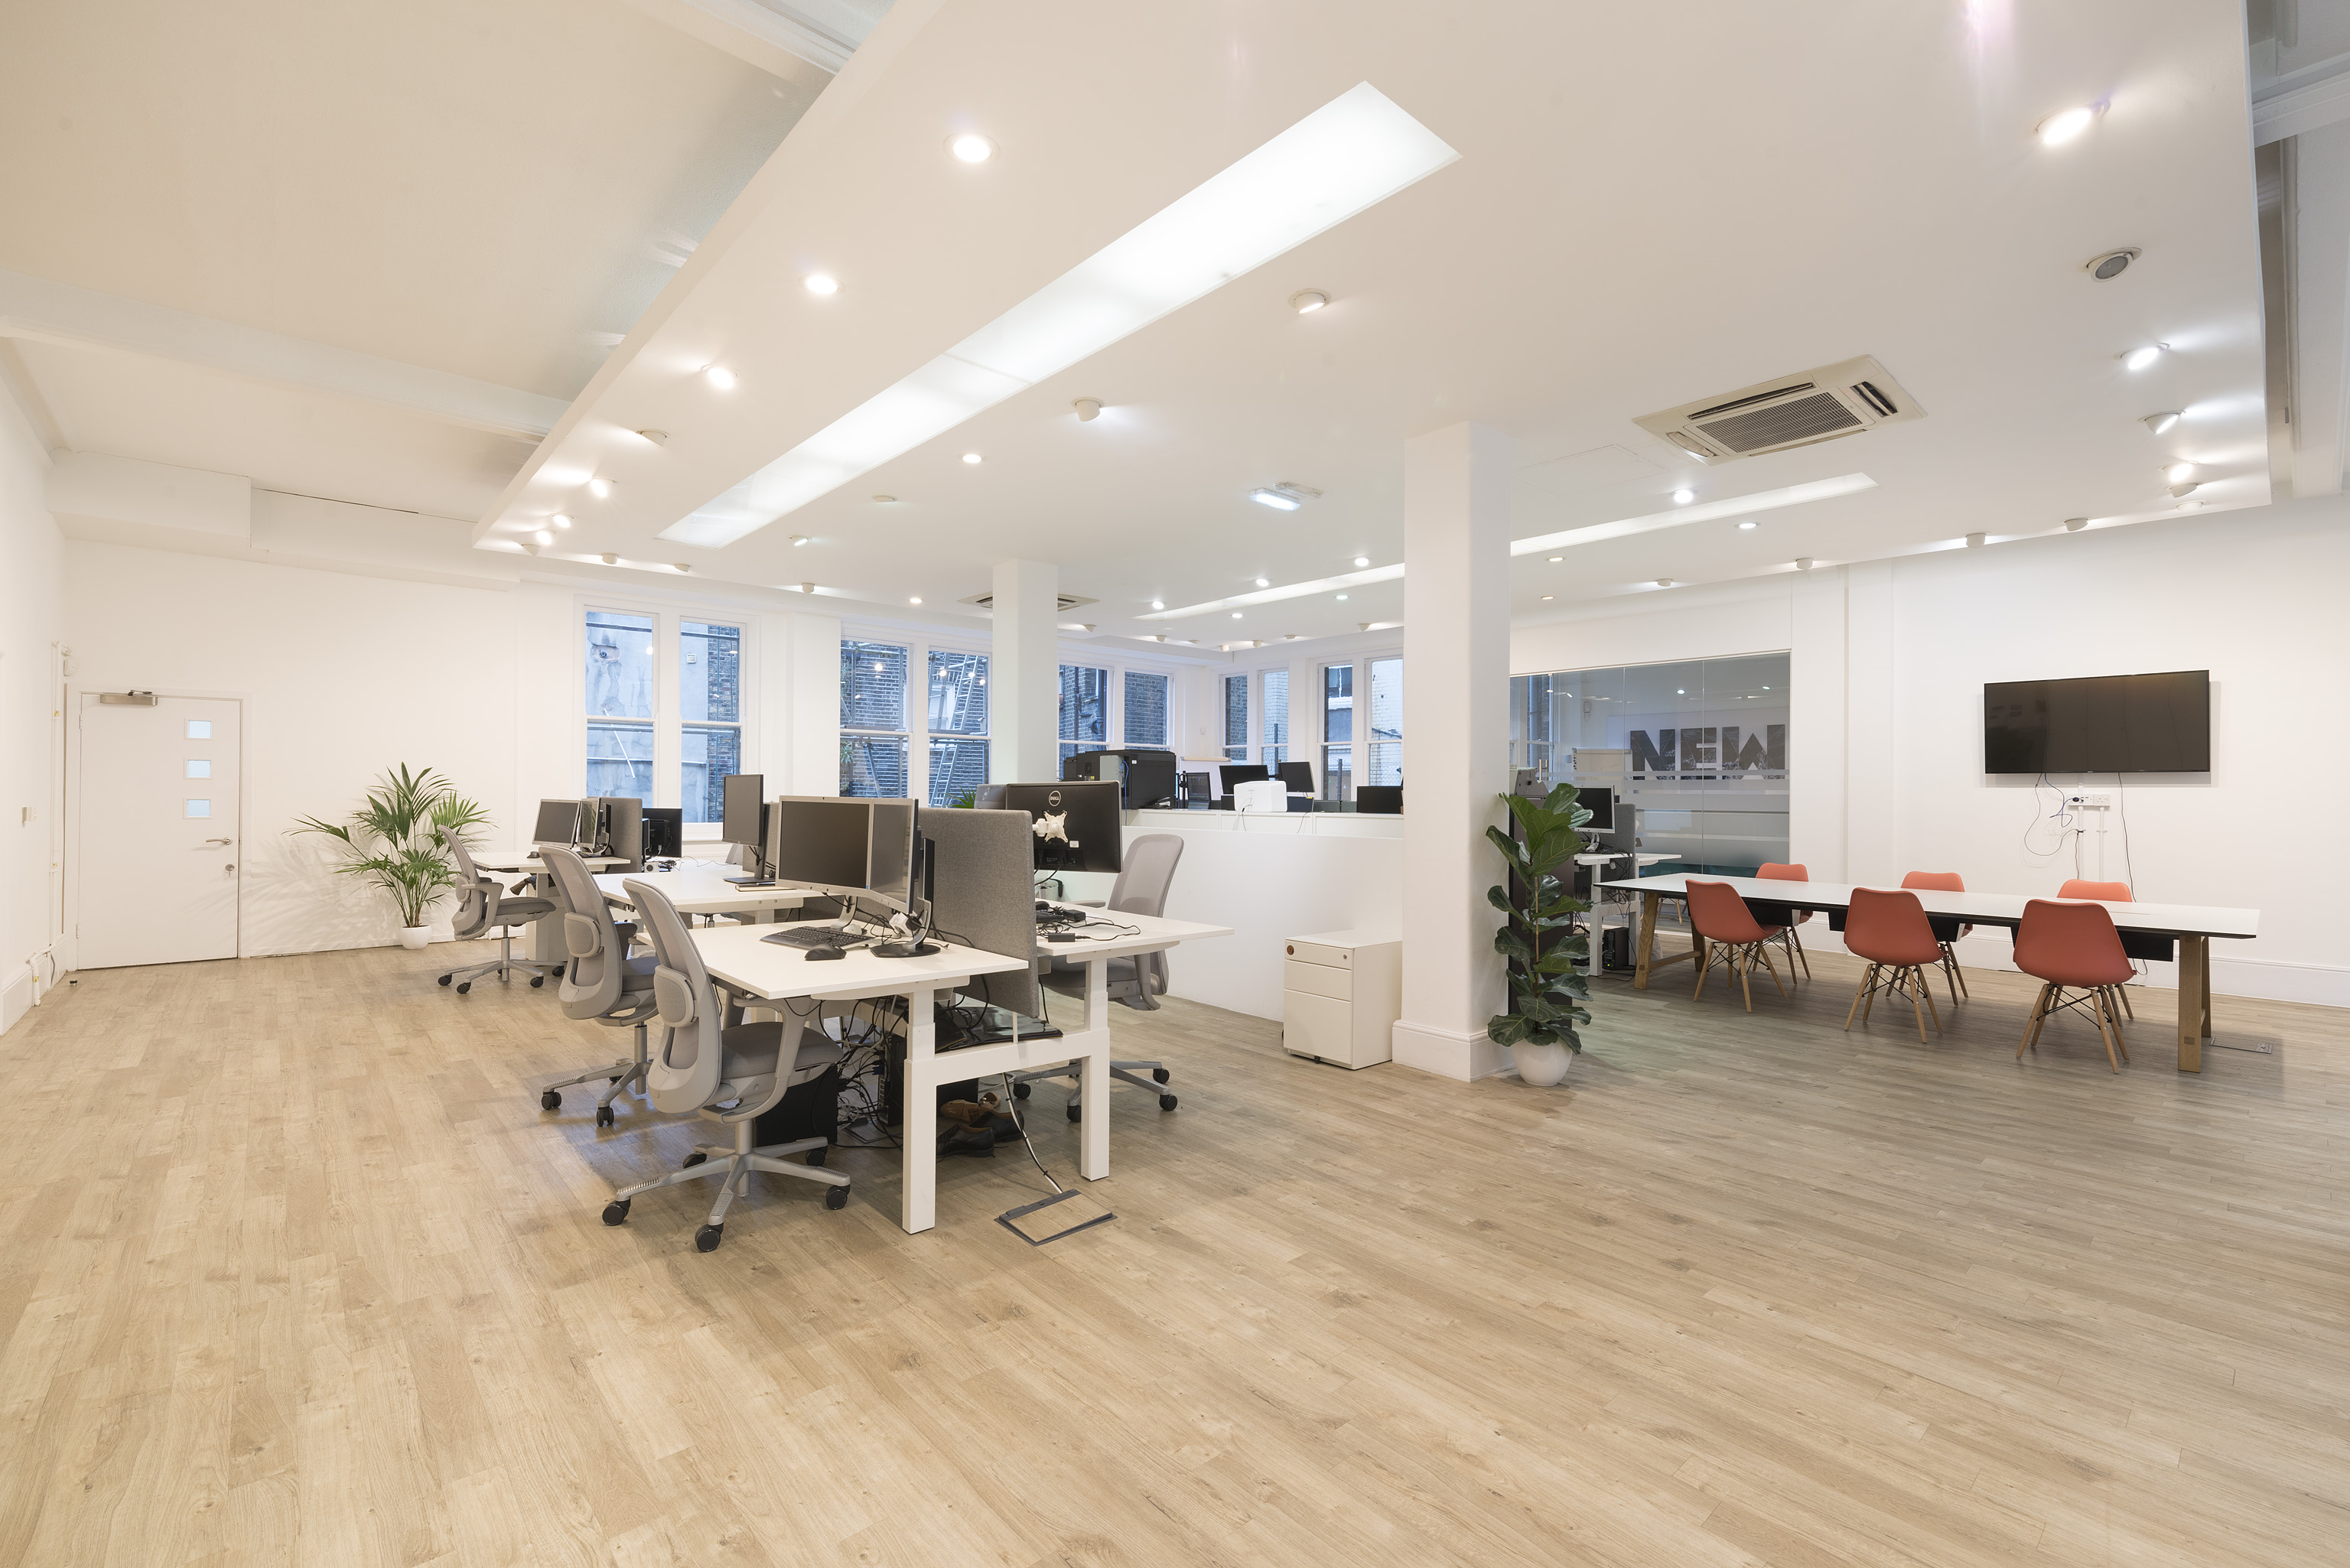 Relocation: New Nordic take up serviced offices in Eastcastle Street